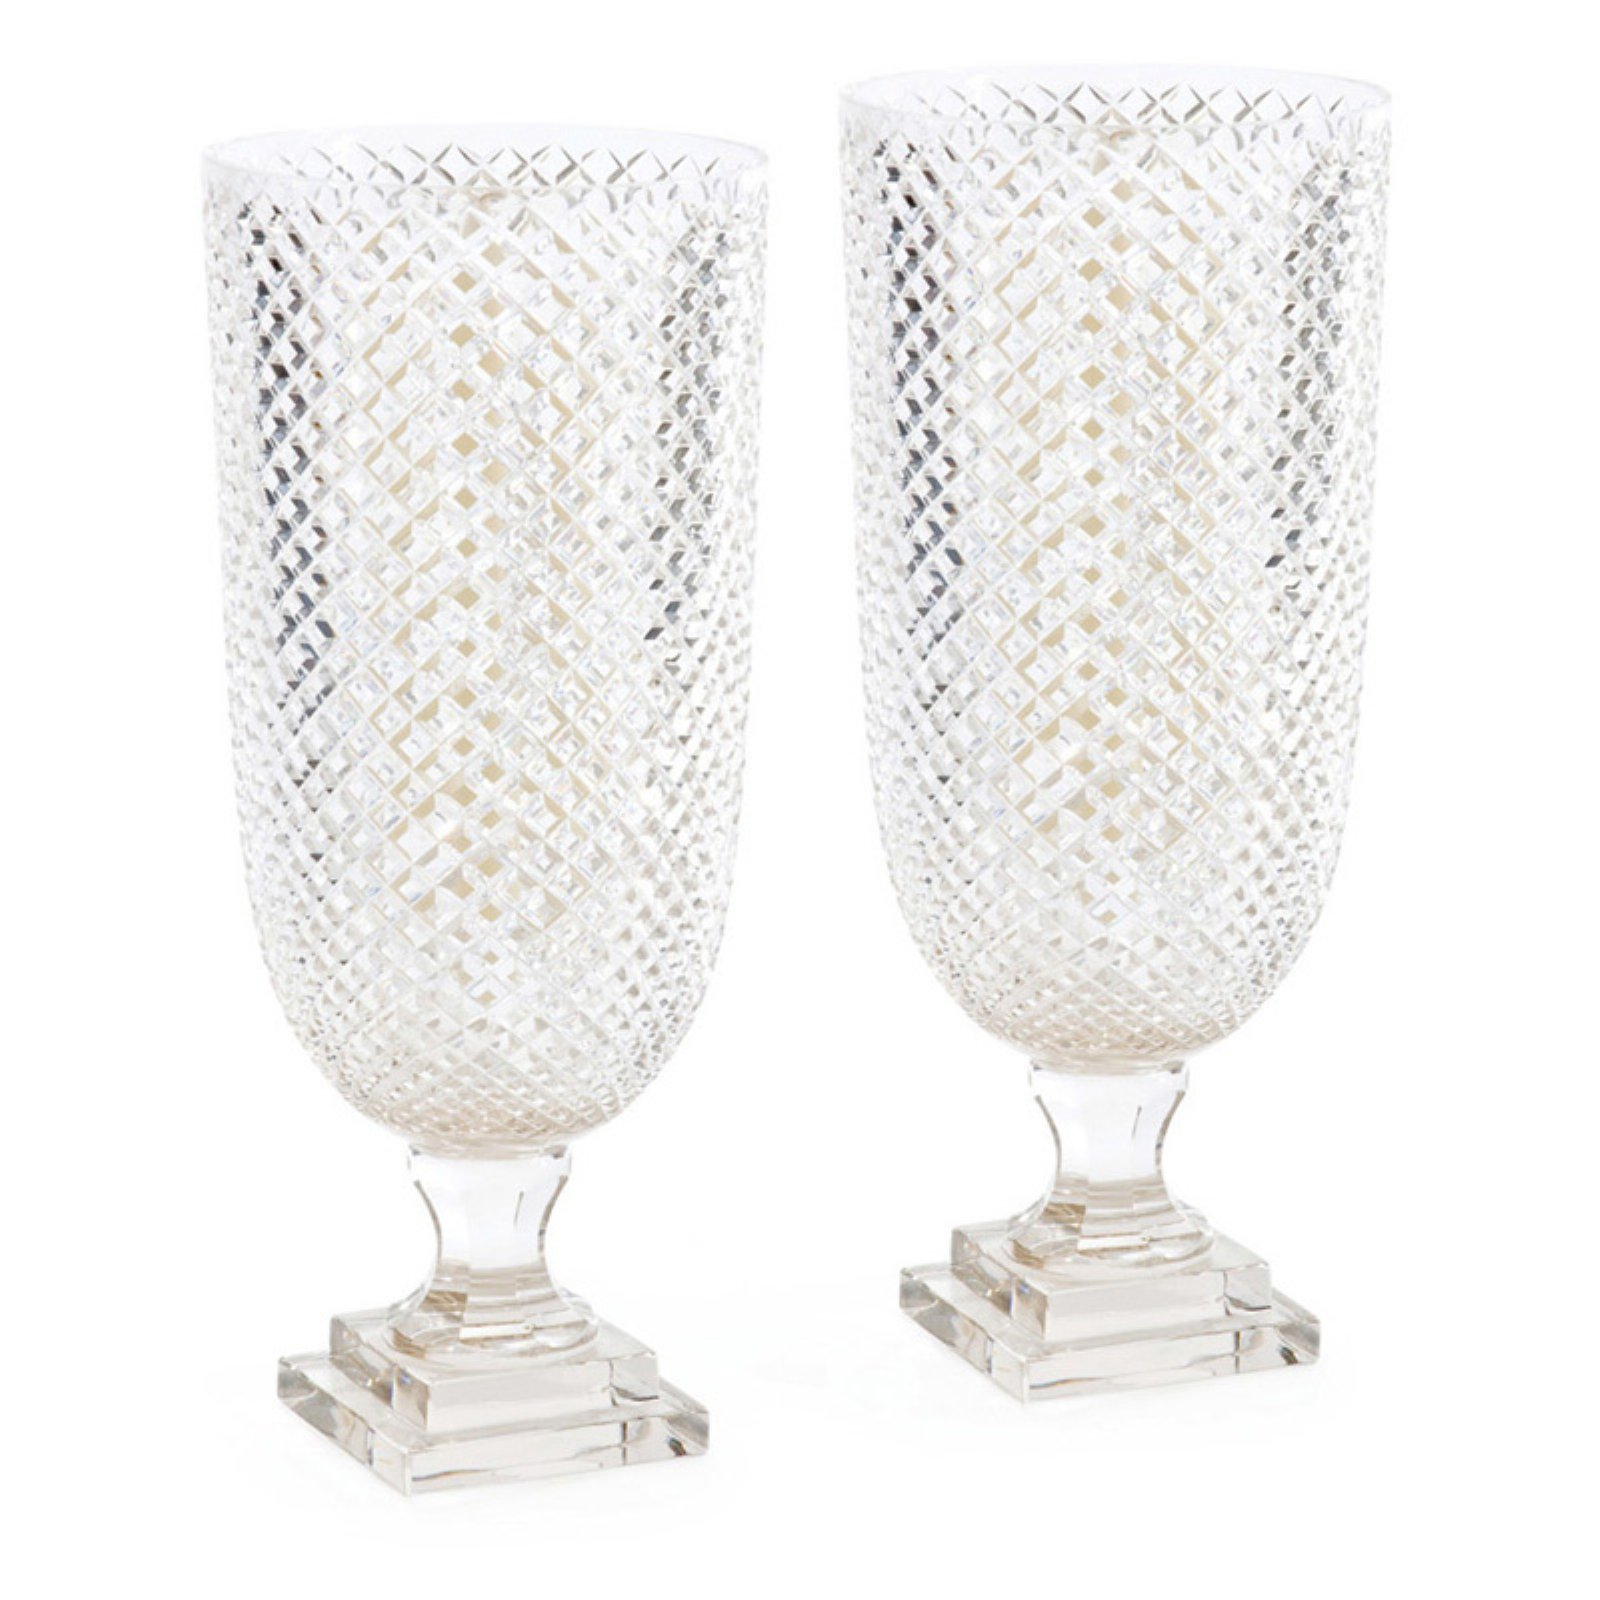 Hip Vintage Diamond Hurricane Candle Holder - Set of 2